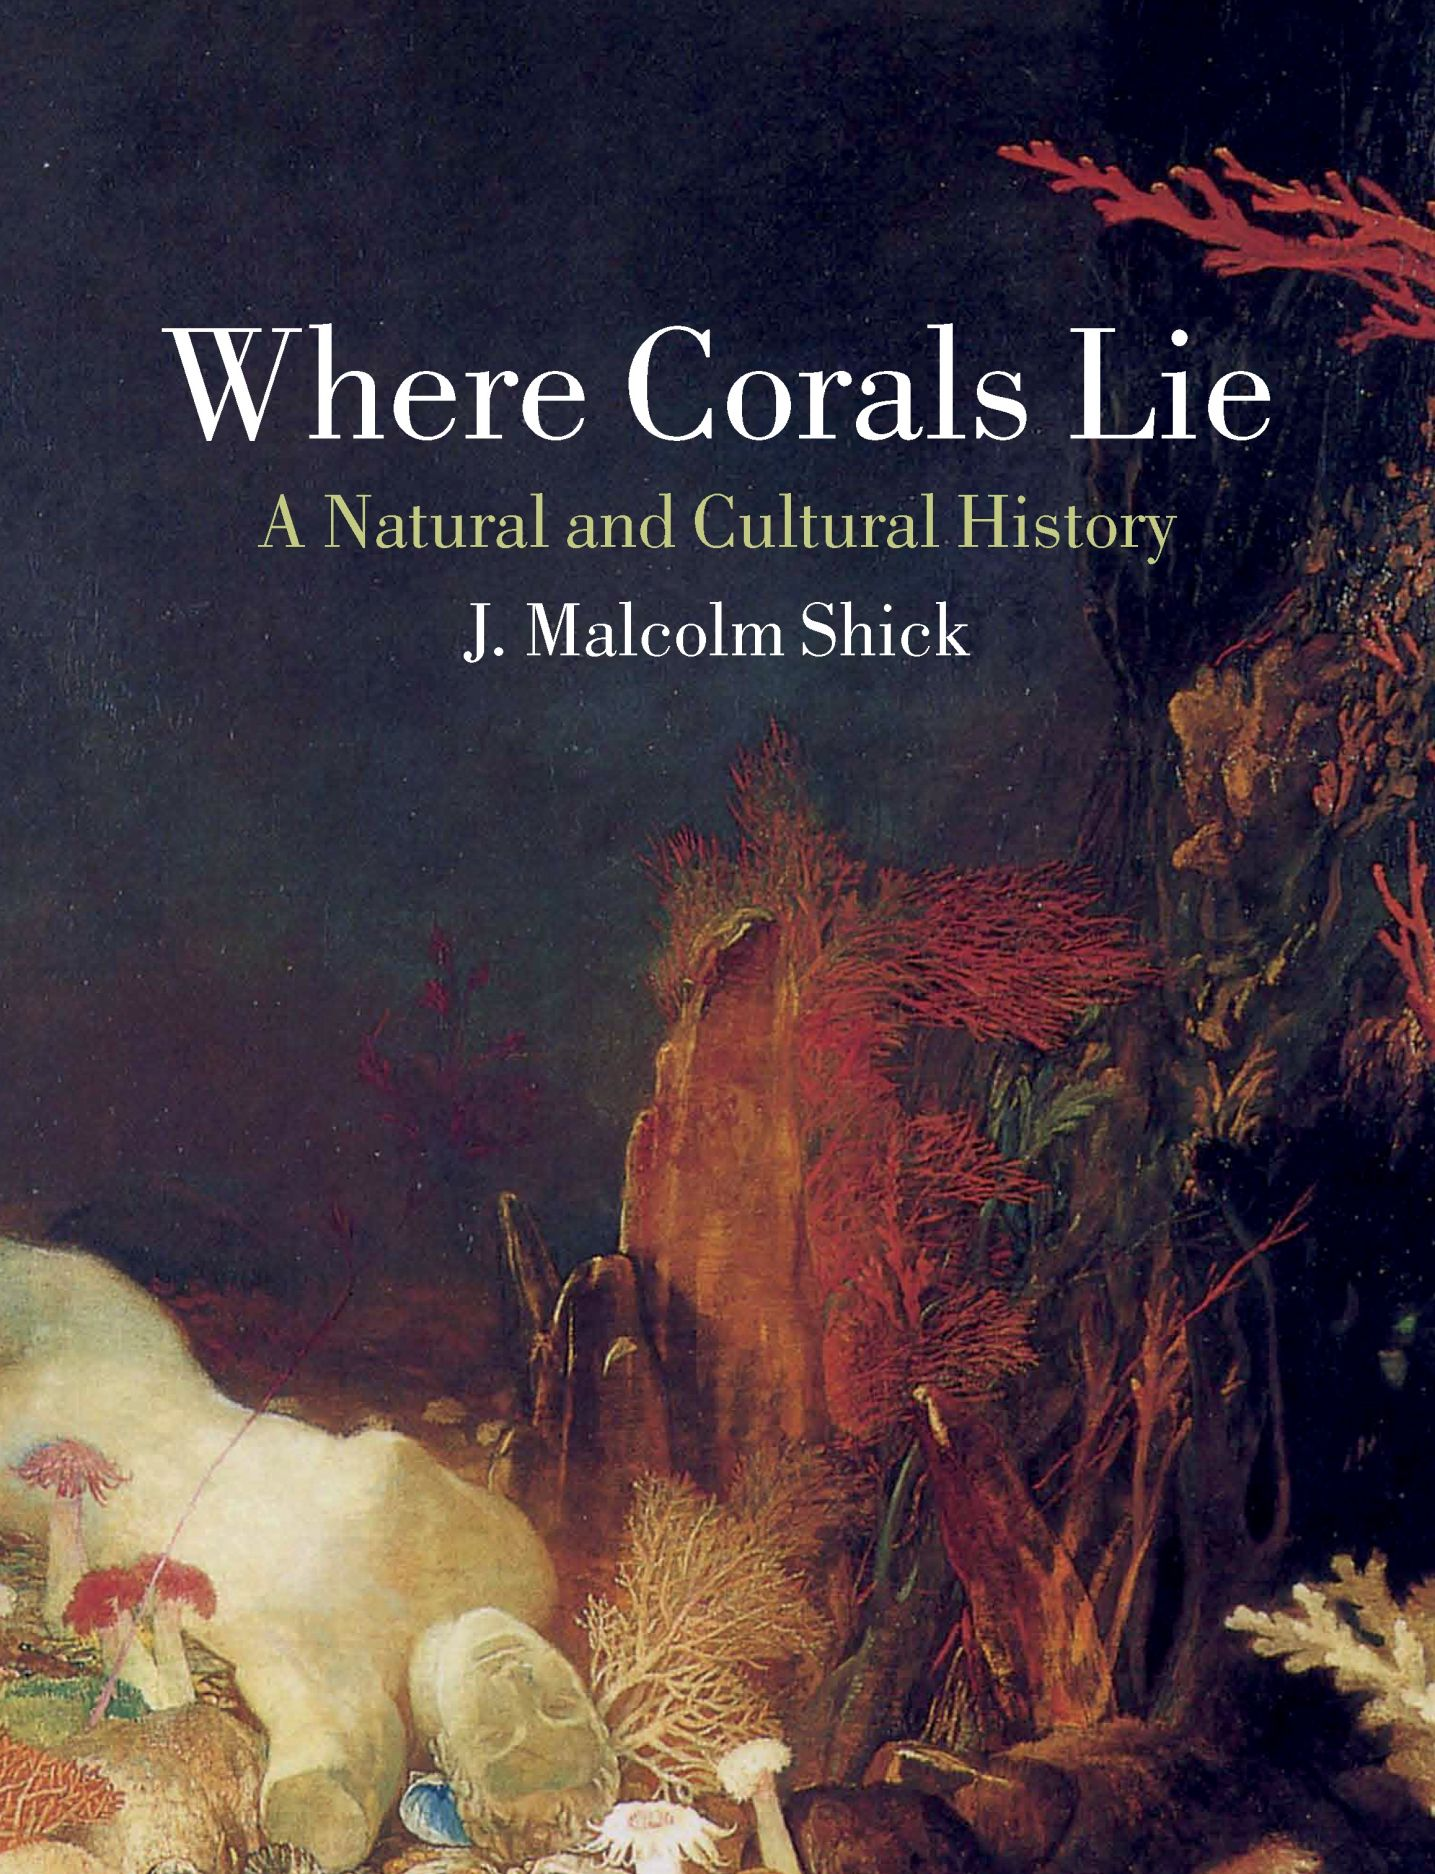 Where Corals Lie: A Natural and Cultural History